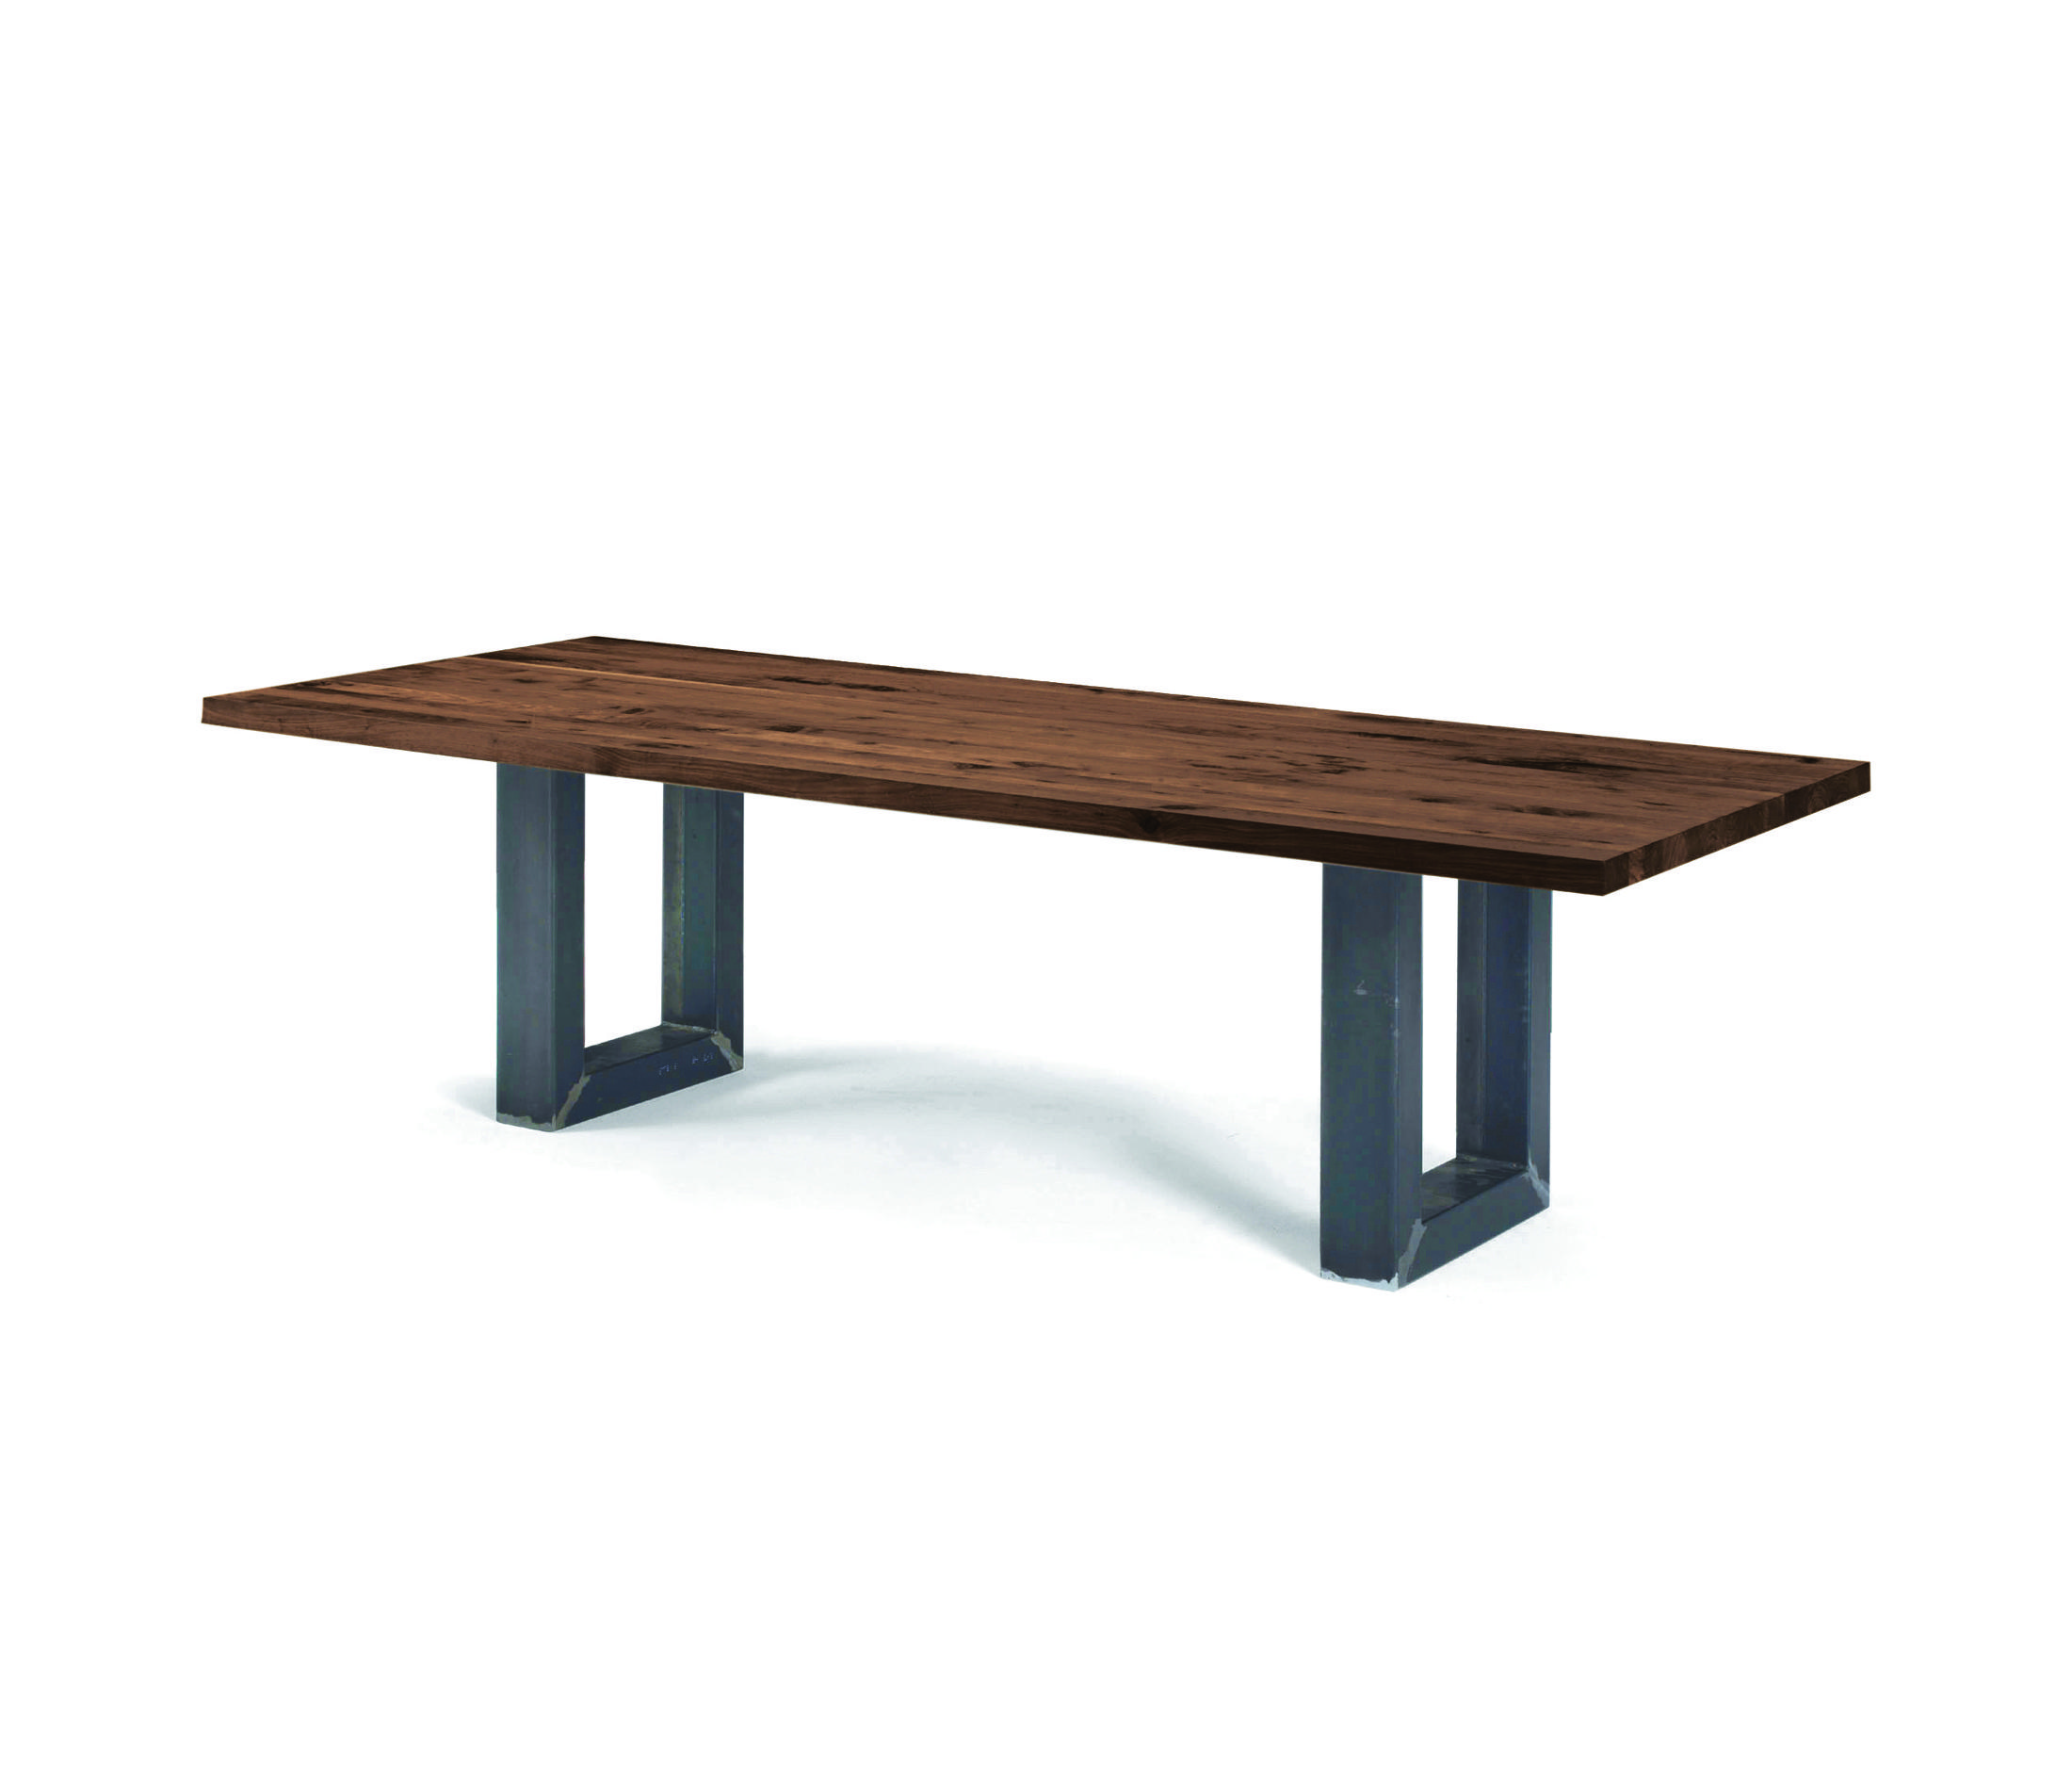 Sherwood dining tables by riva 1920 architonic for Table riva but